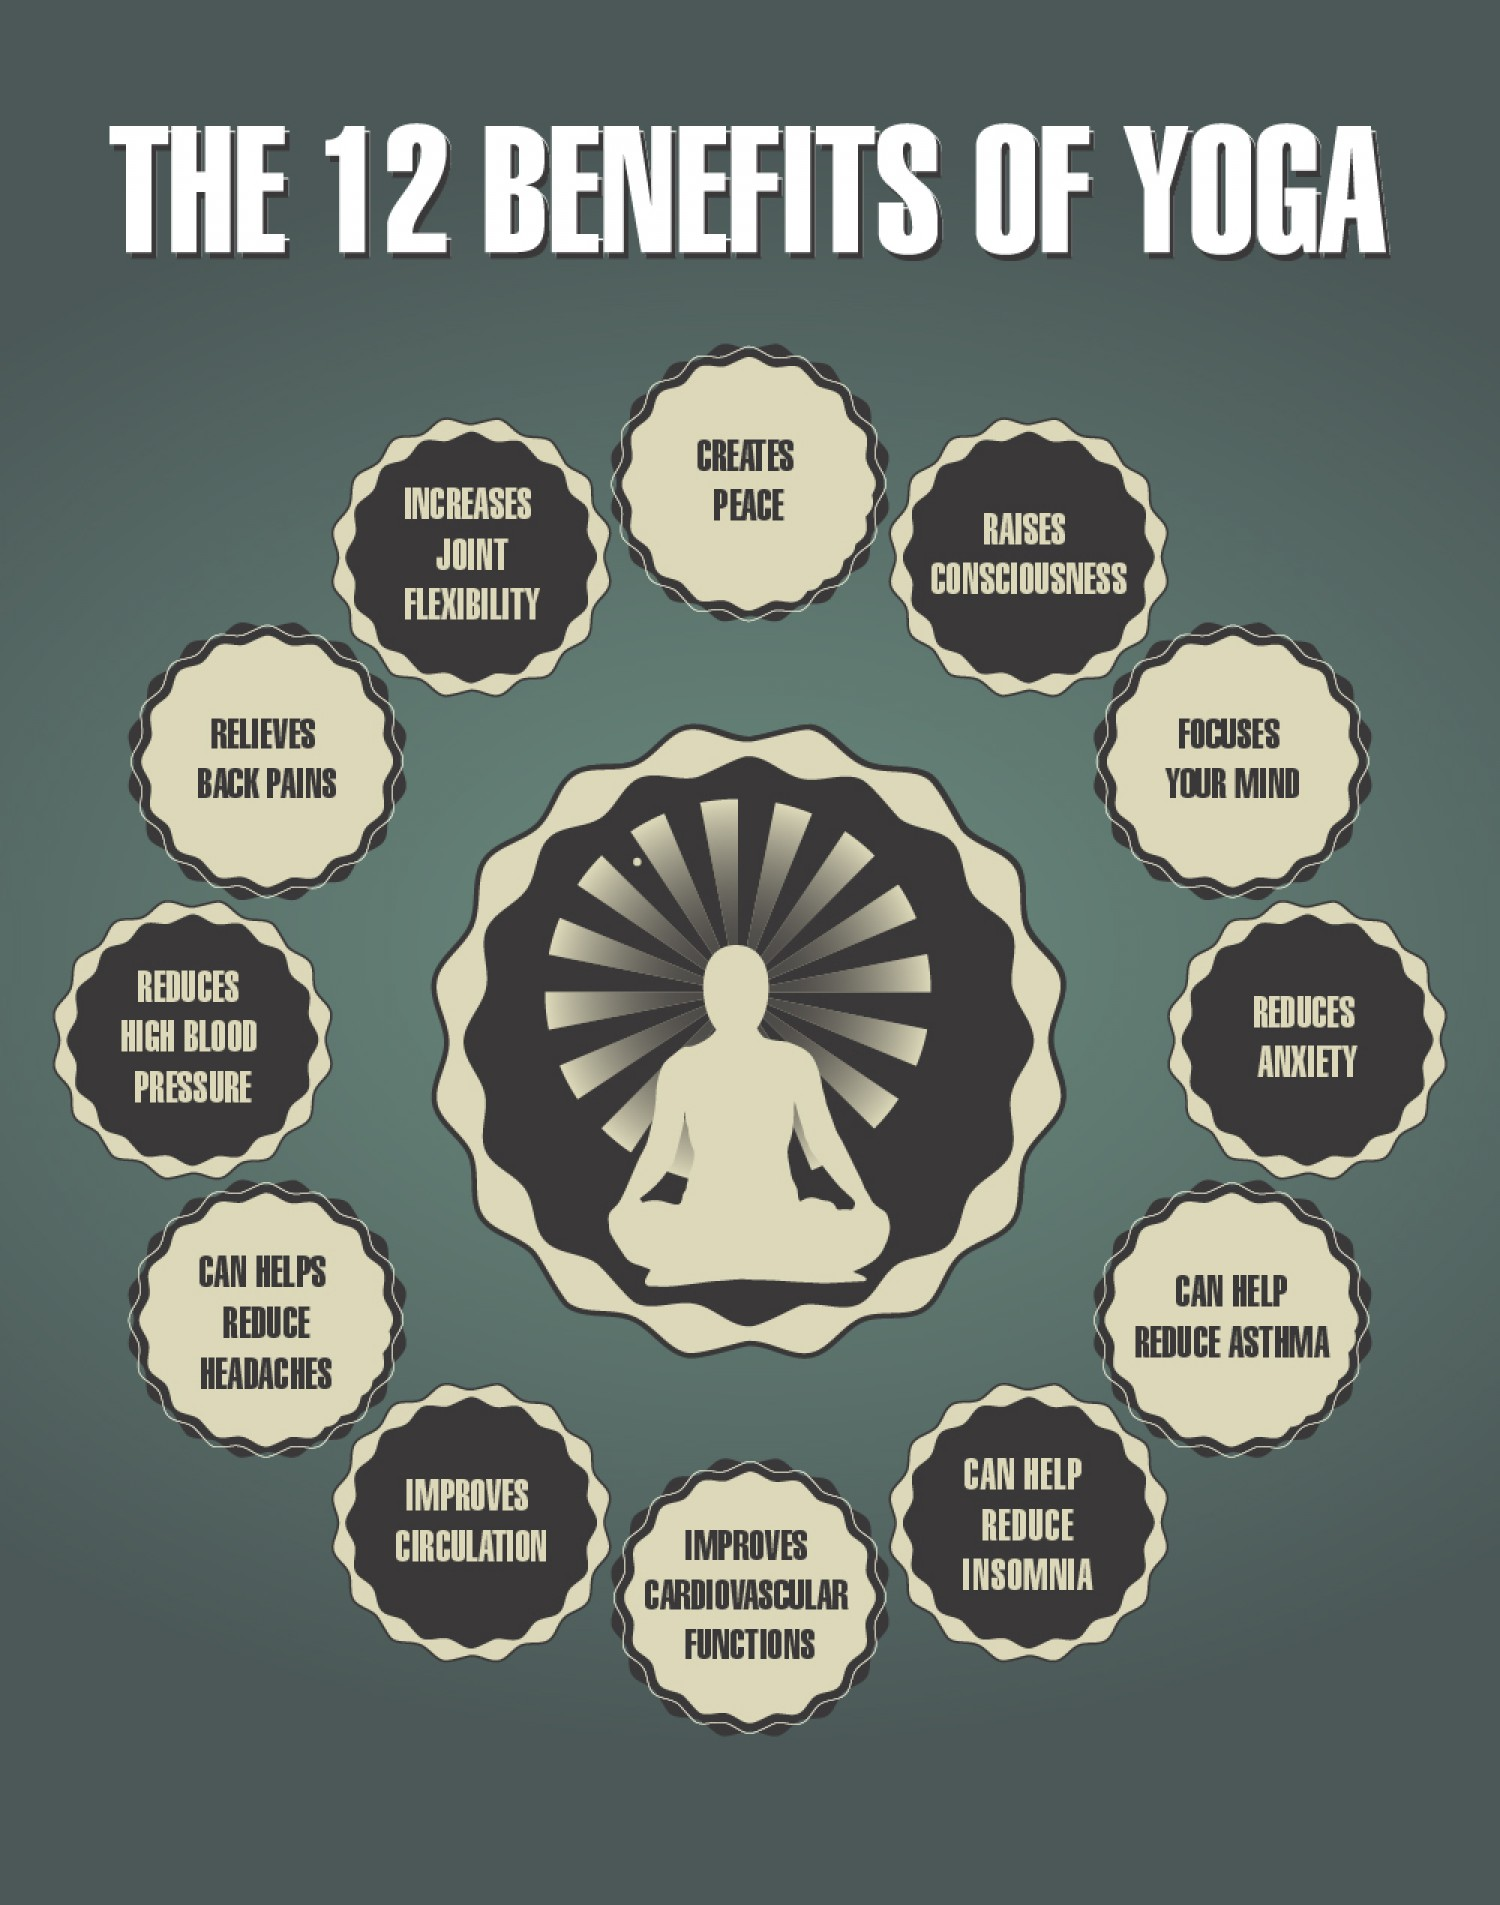 the-12-benefits-of-yoga_536dd80d6ee6d_w1500